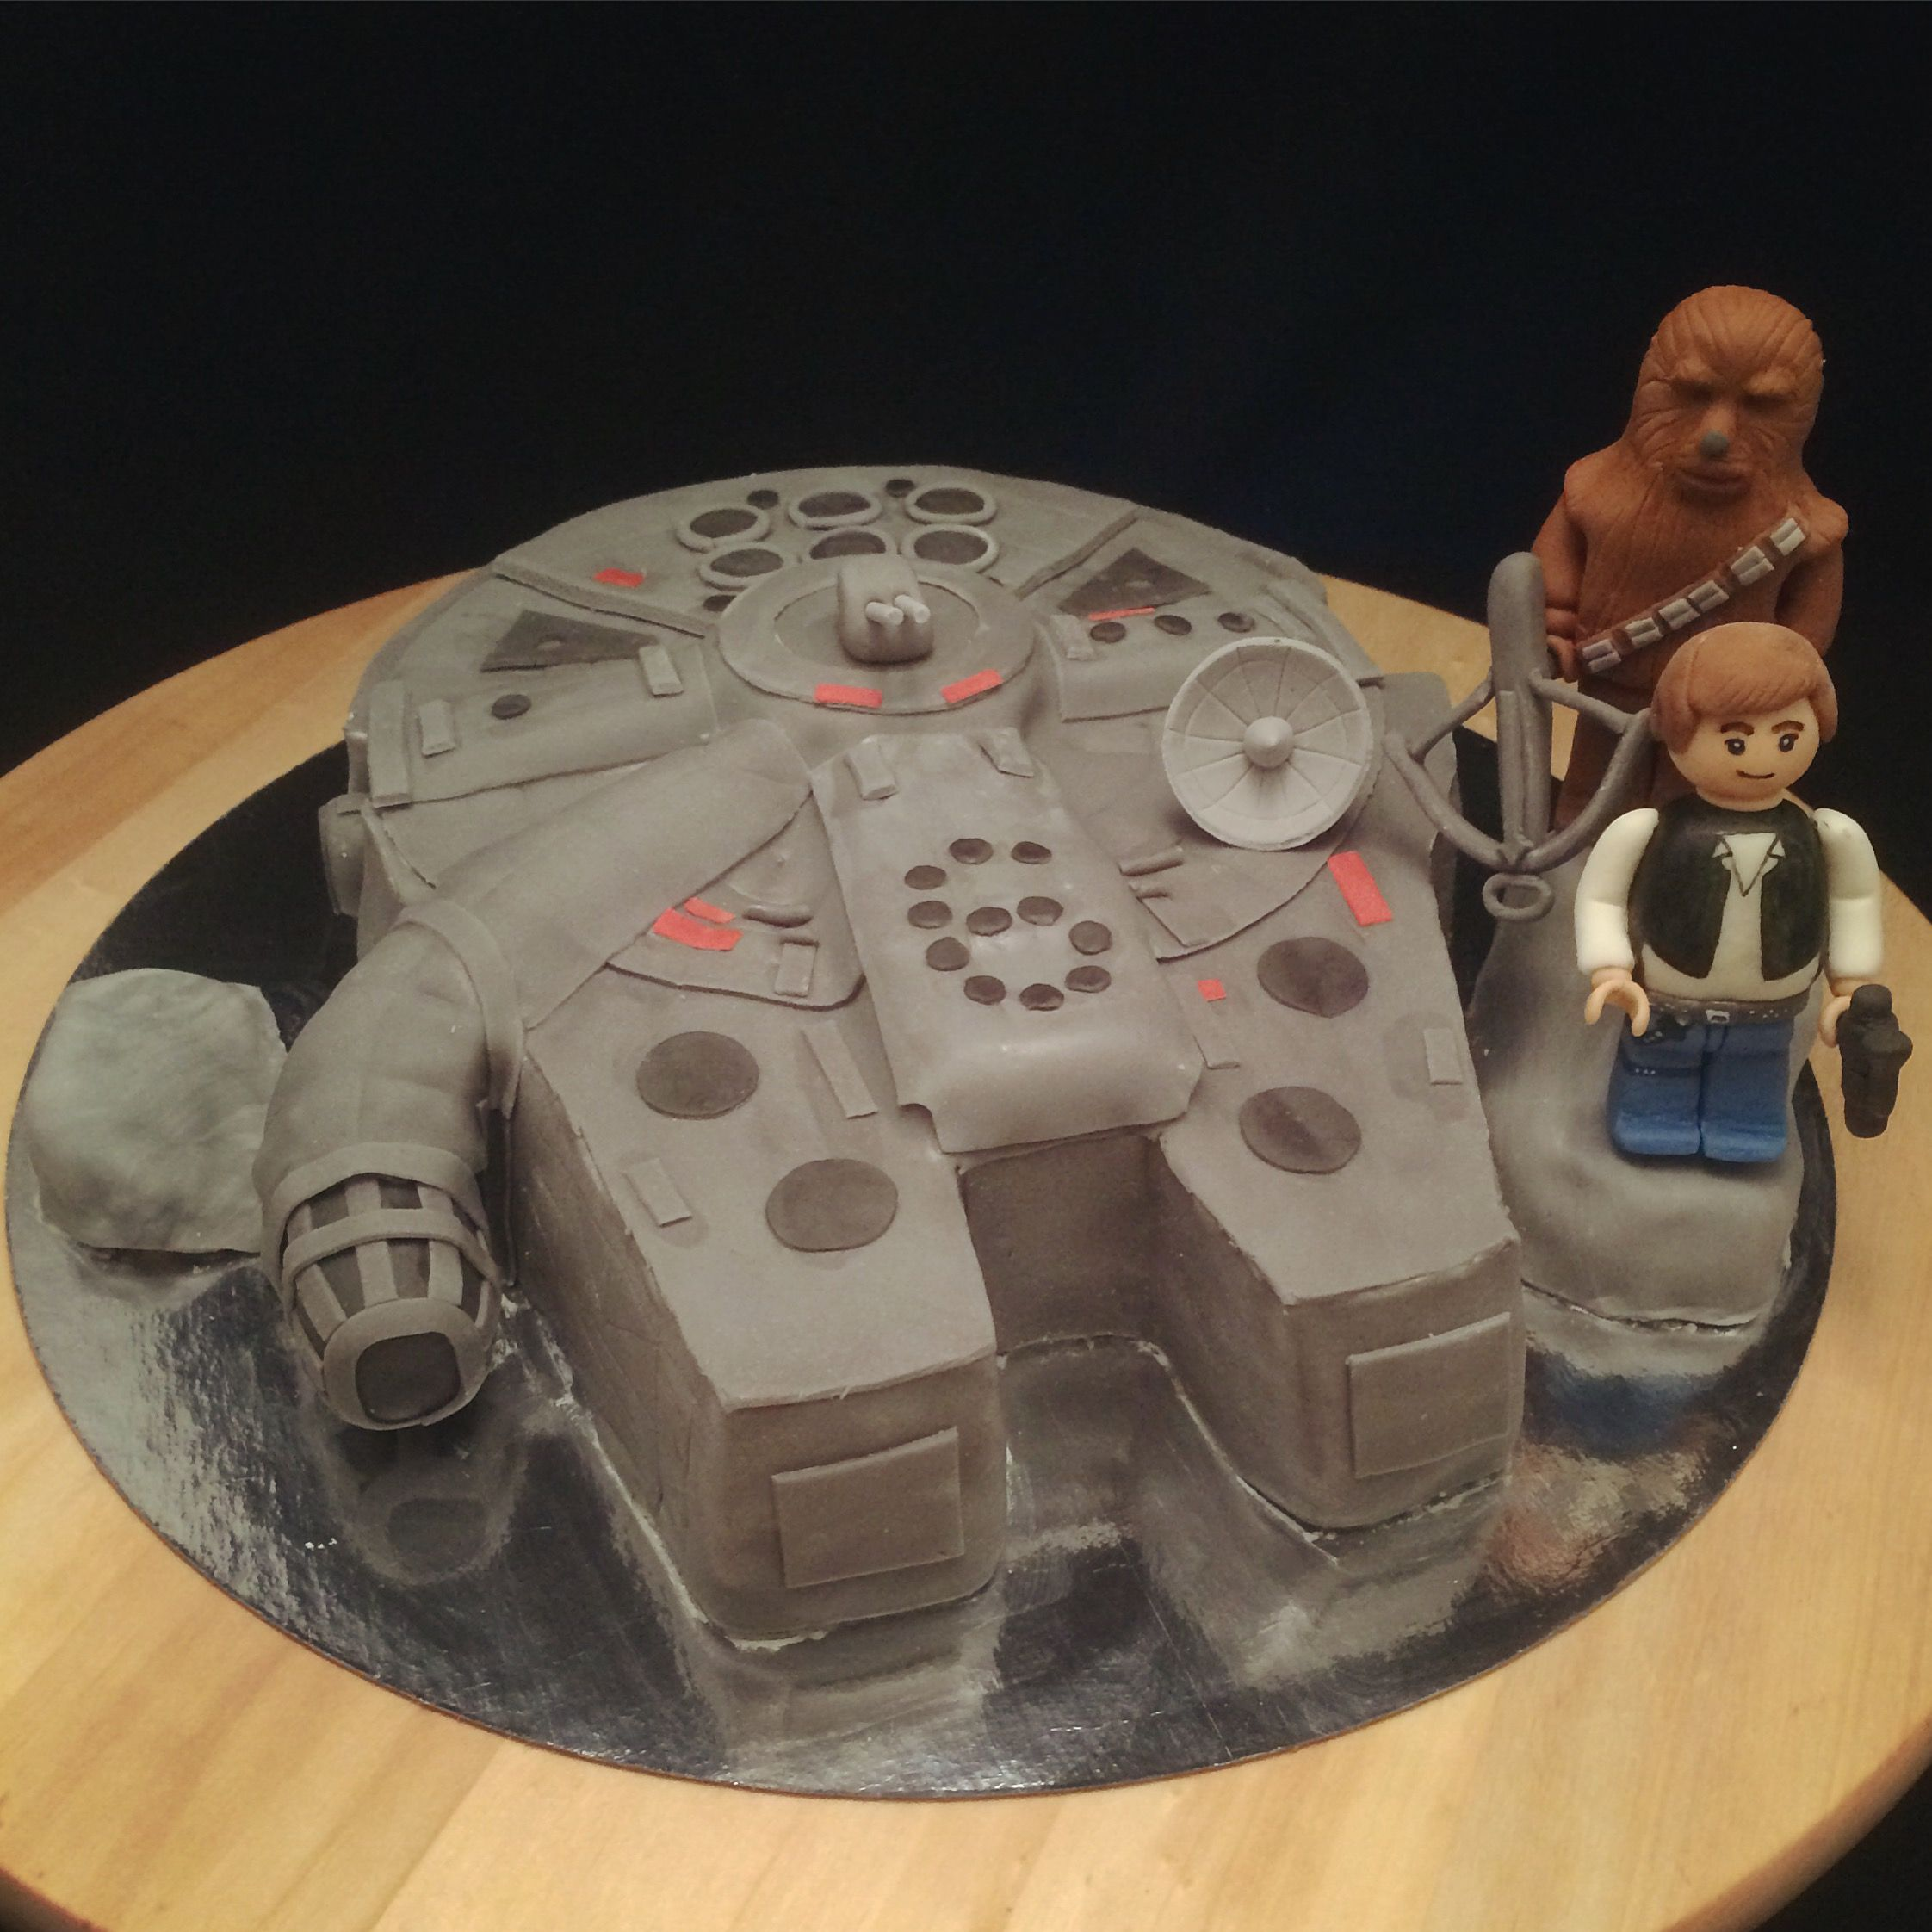 Millennium falcon cake with Chewbacca and Han Solo Lego style